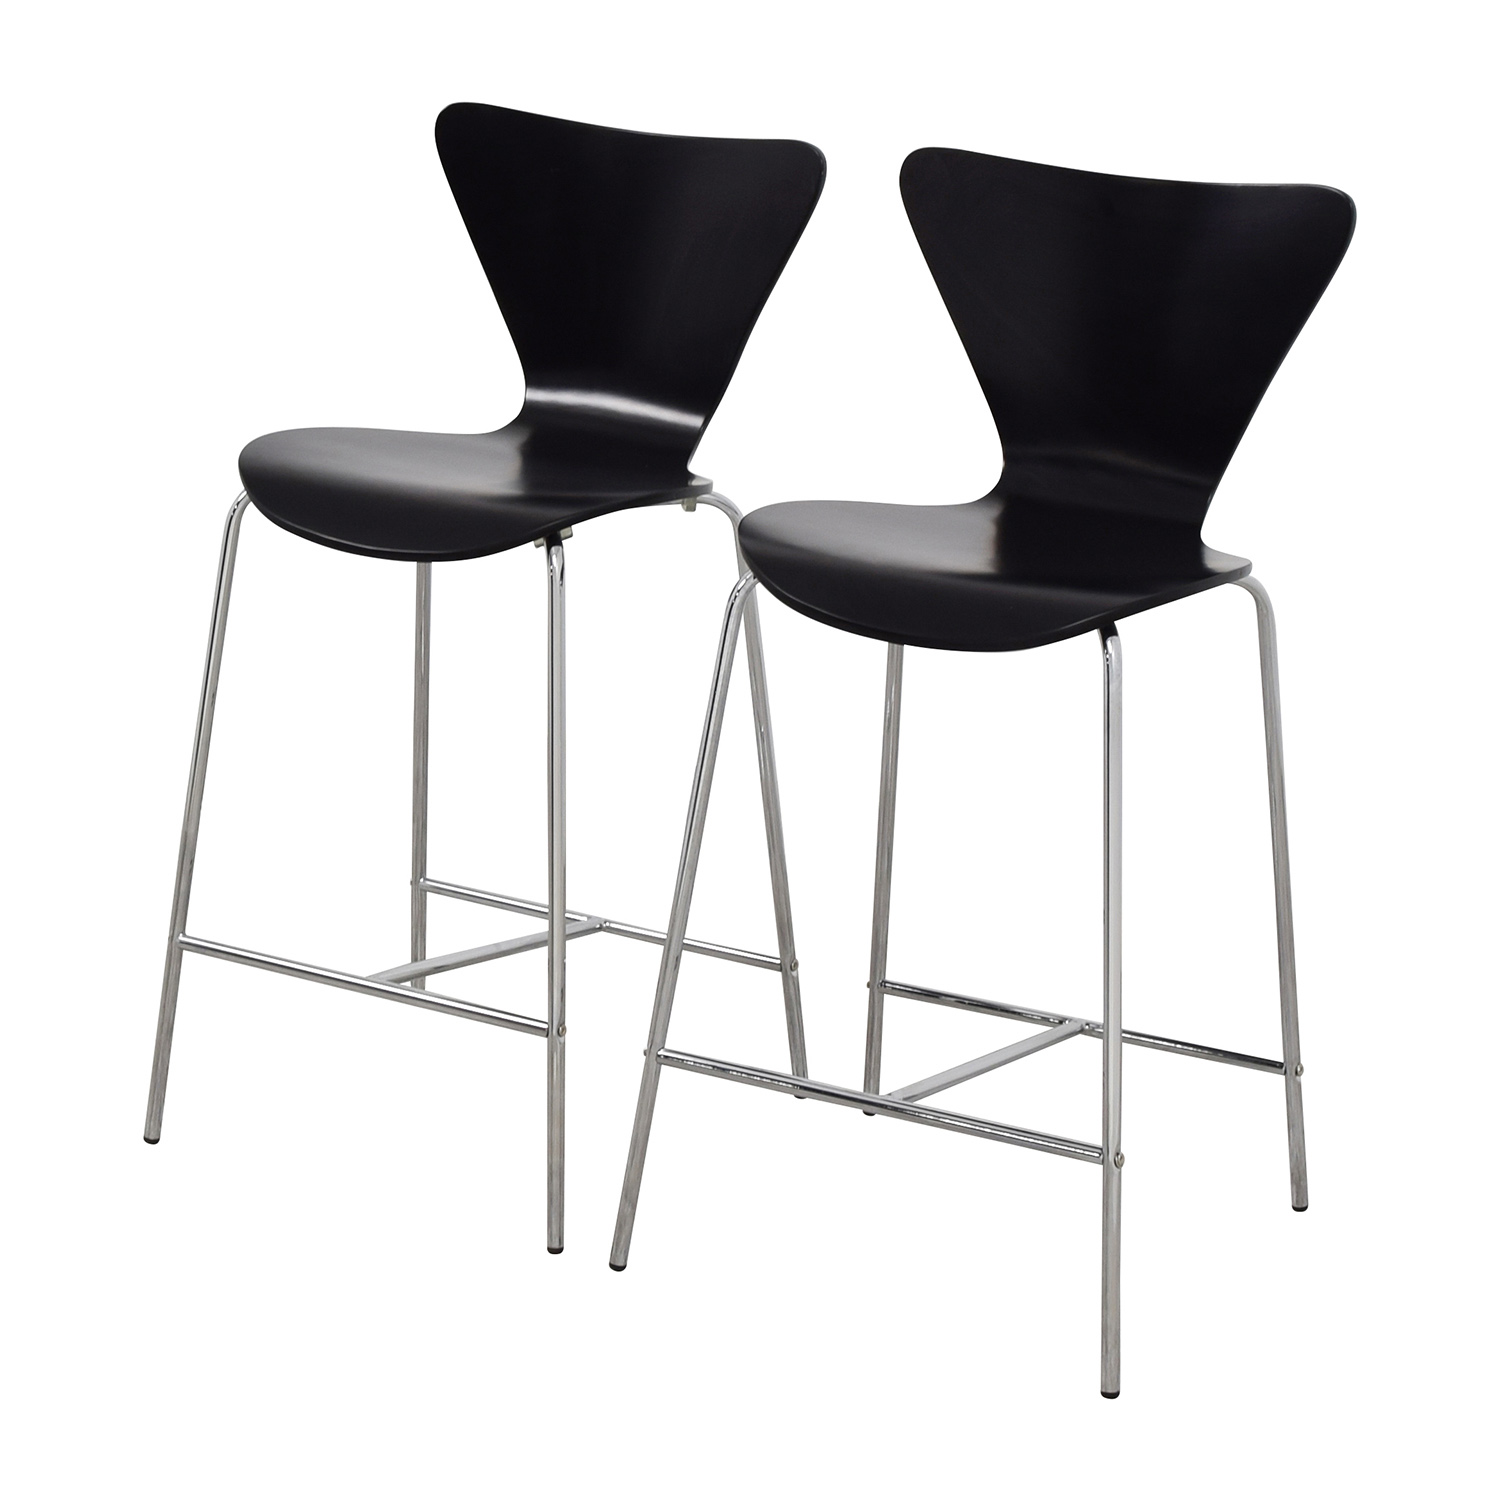 shop InMod InMod Tendy-C Counter Chair Black online